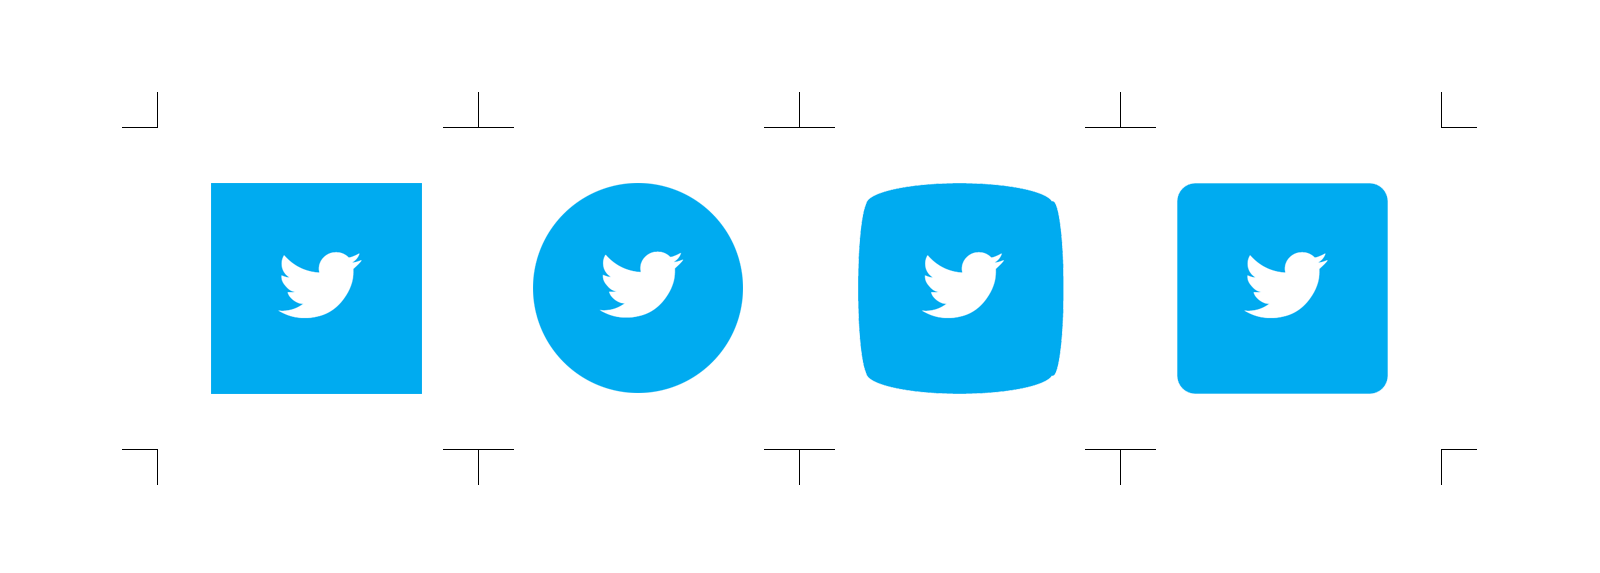 Twitter Share Icon #402620.